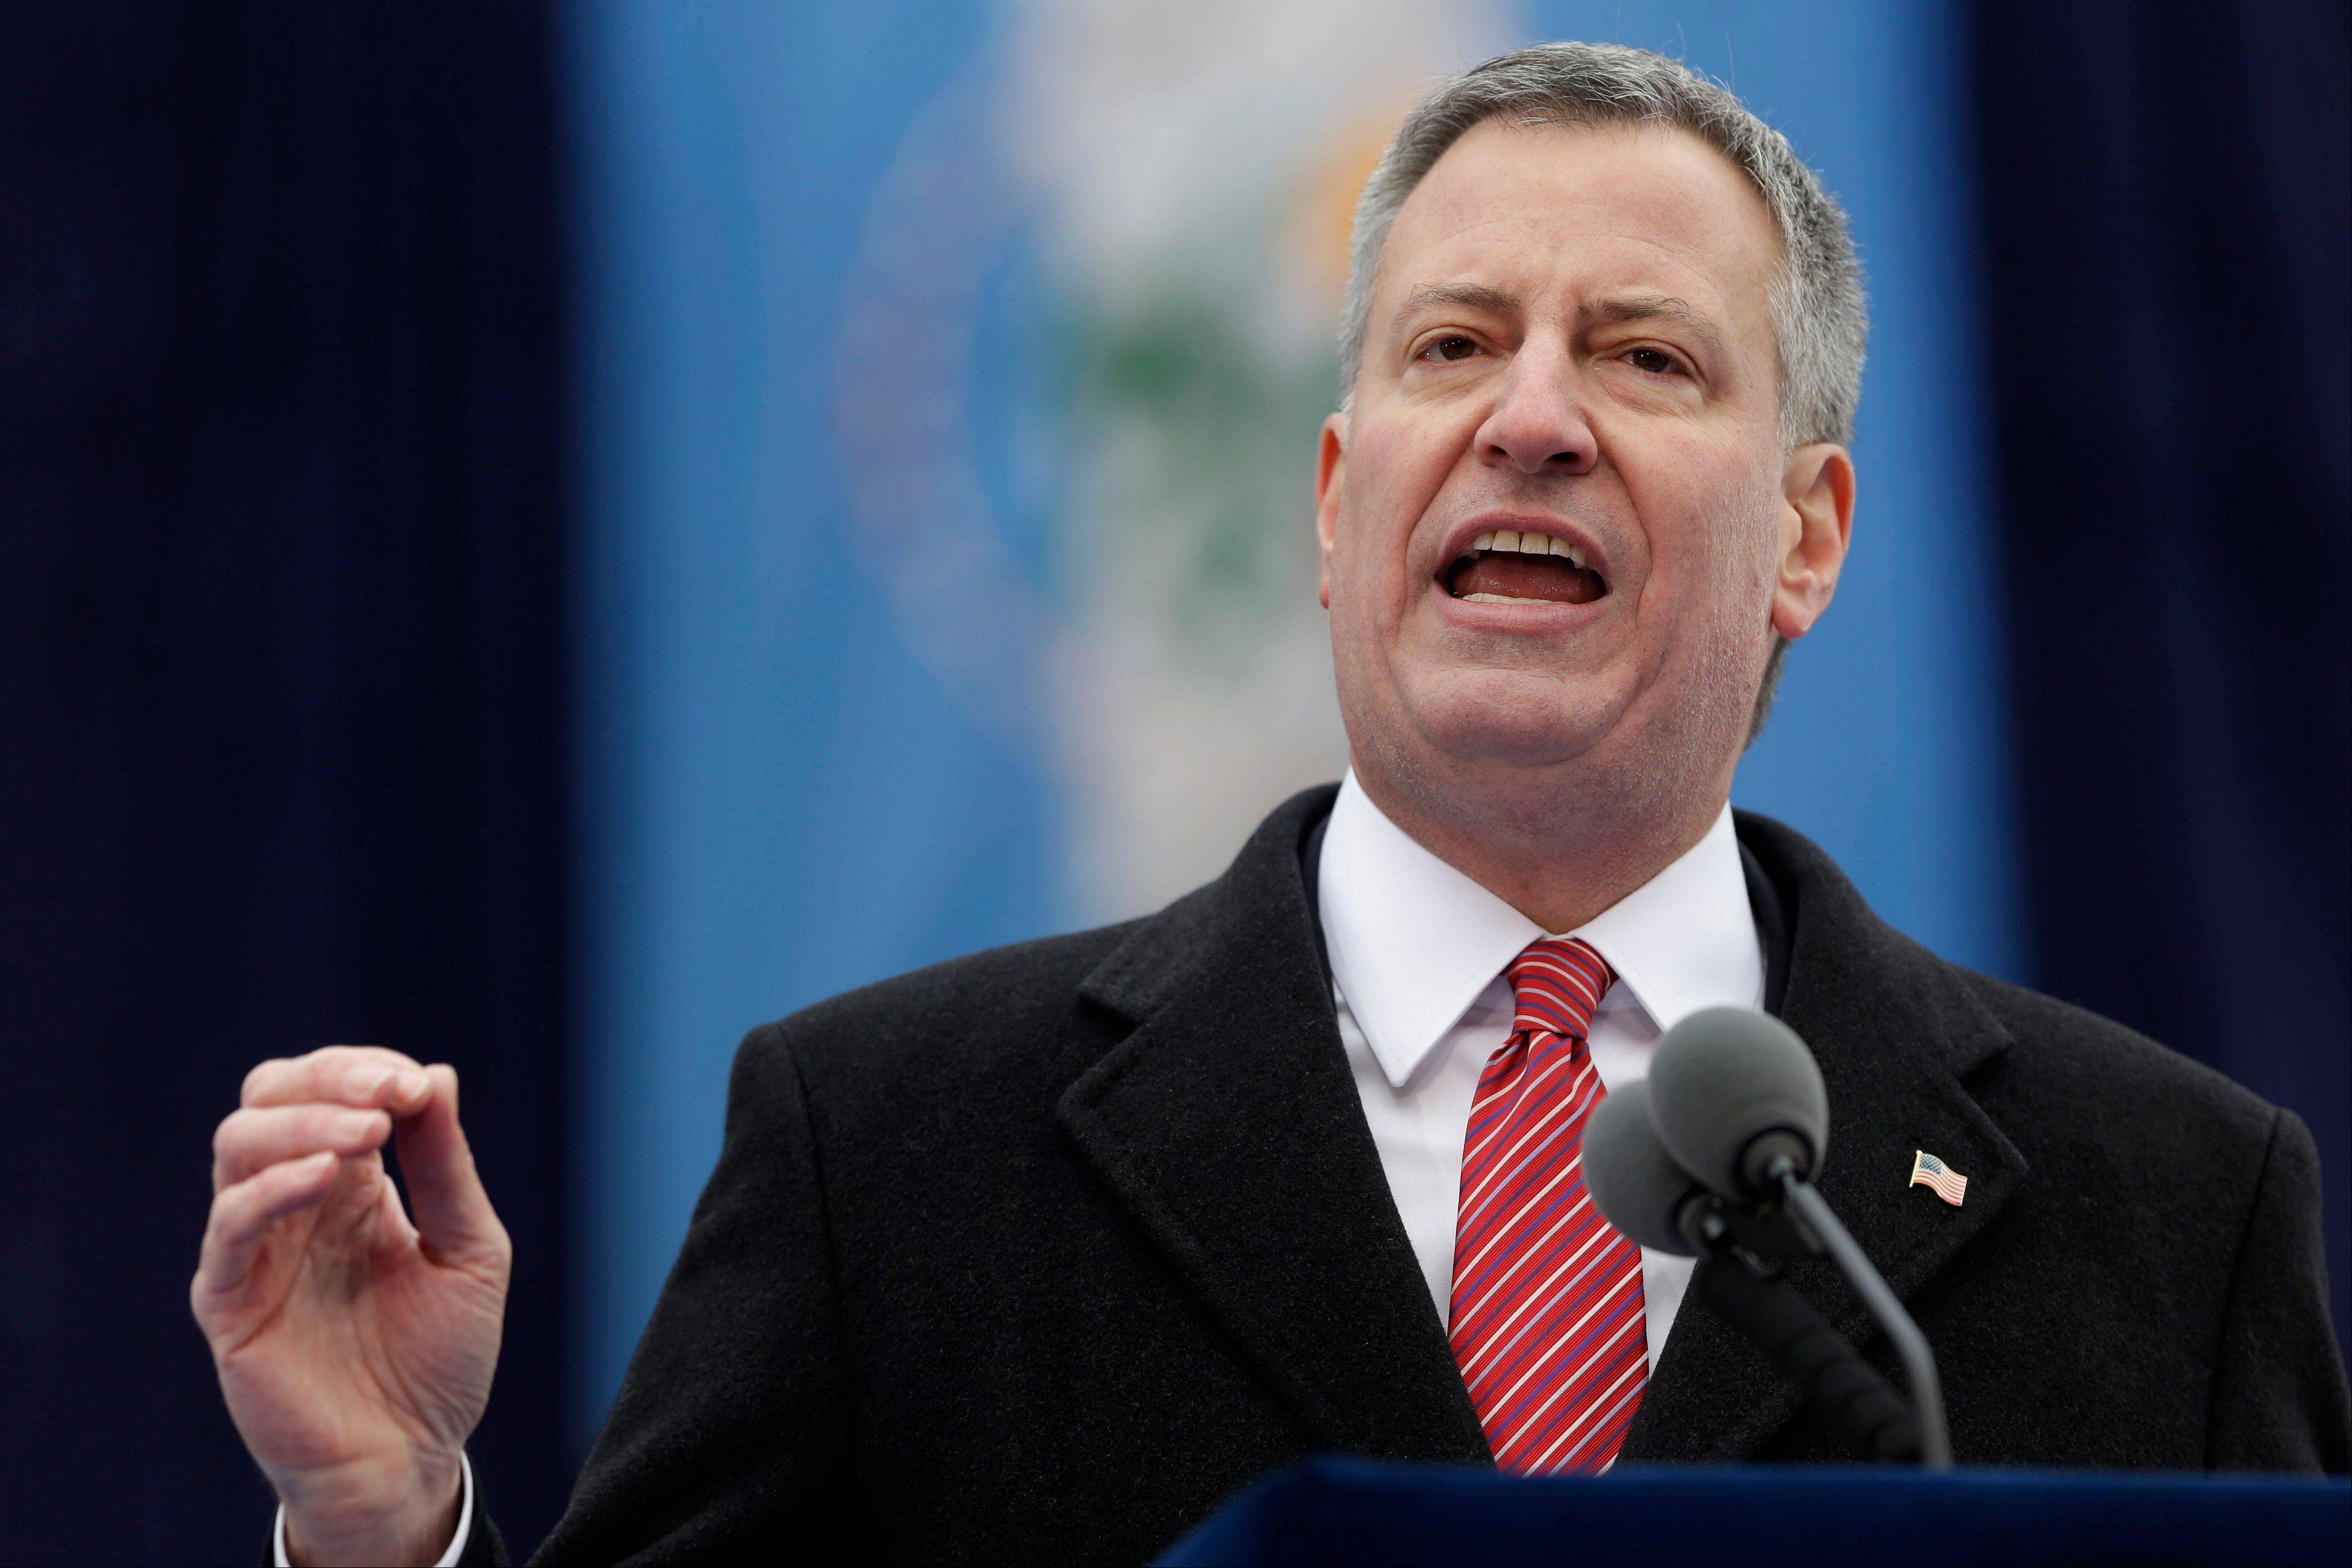 New York City Mayor Bill de Blasio will not travel across the Hudson River to MetLife Stadium in East Rutherford, N.J., on Sunday for the Super Bowl that will be broadcast to a television audience expected to top 100 million people. De Blasio said Thursday, Jan. 30, that he has �decided to watch the game on TV, just like the vast majority of New Yorkers.�